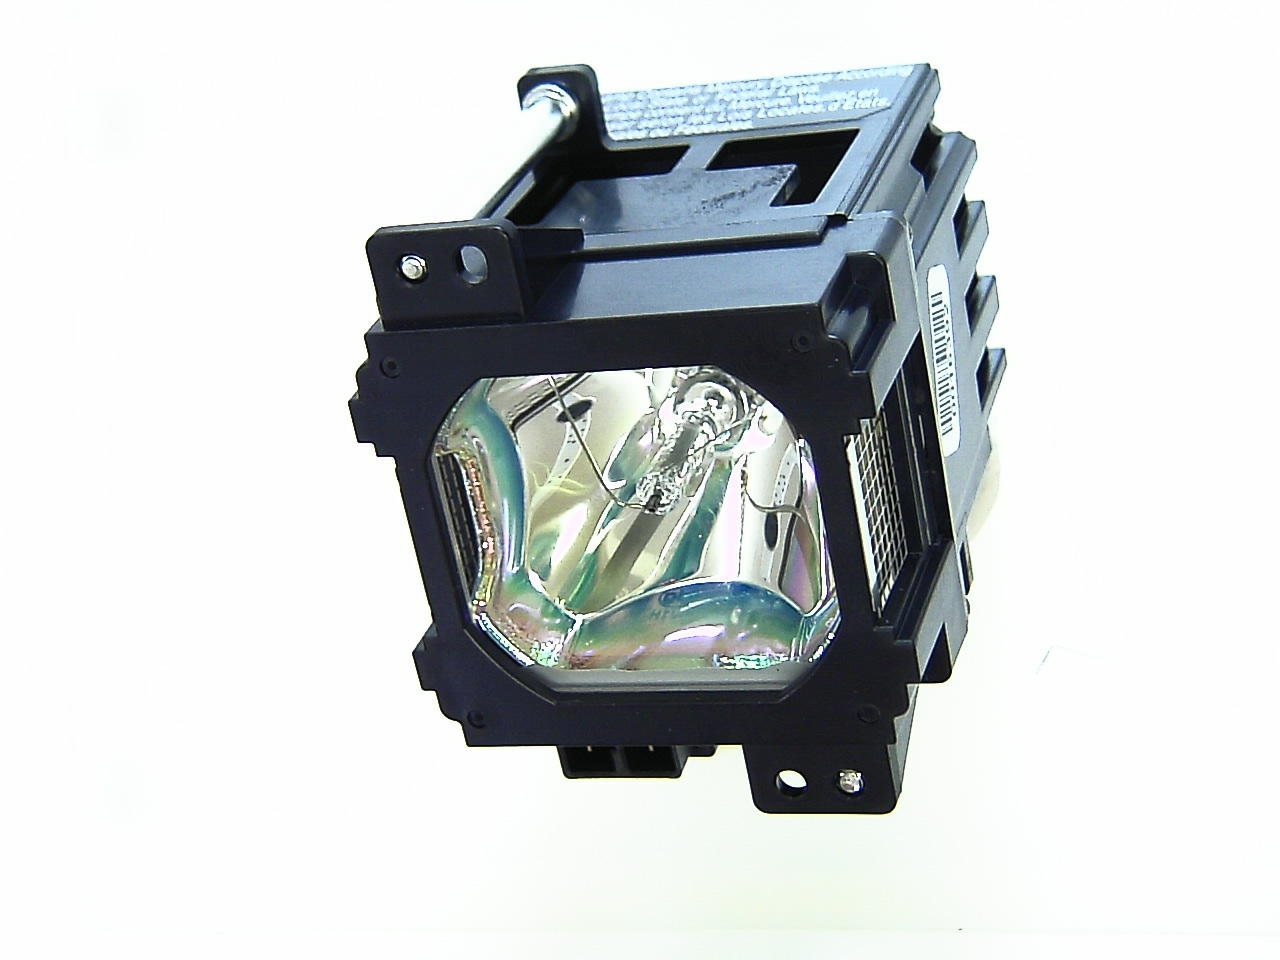 Jvc Bhl 5009 S Projector Replacement Lamp Amp Bulbs